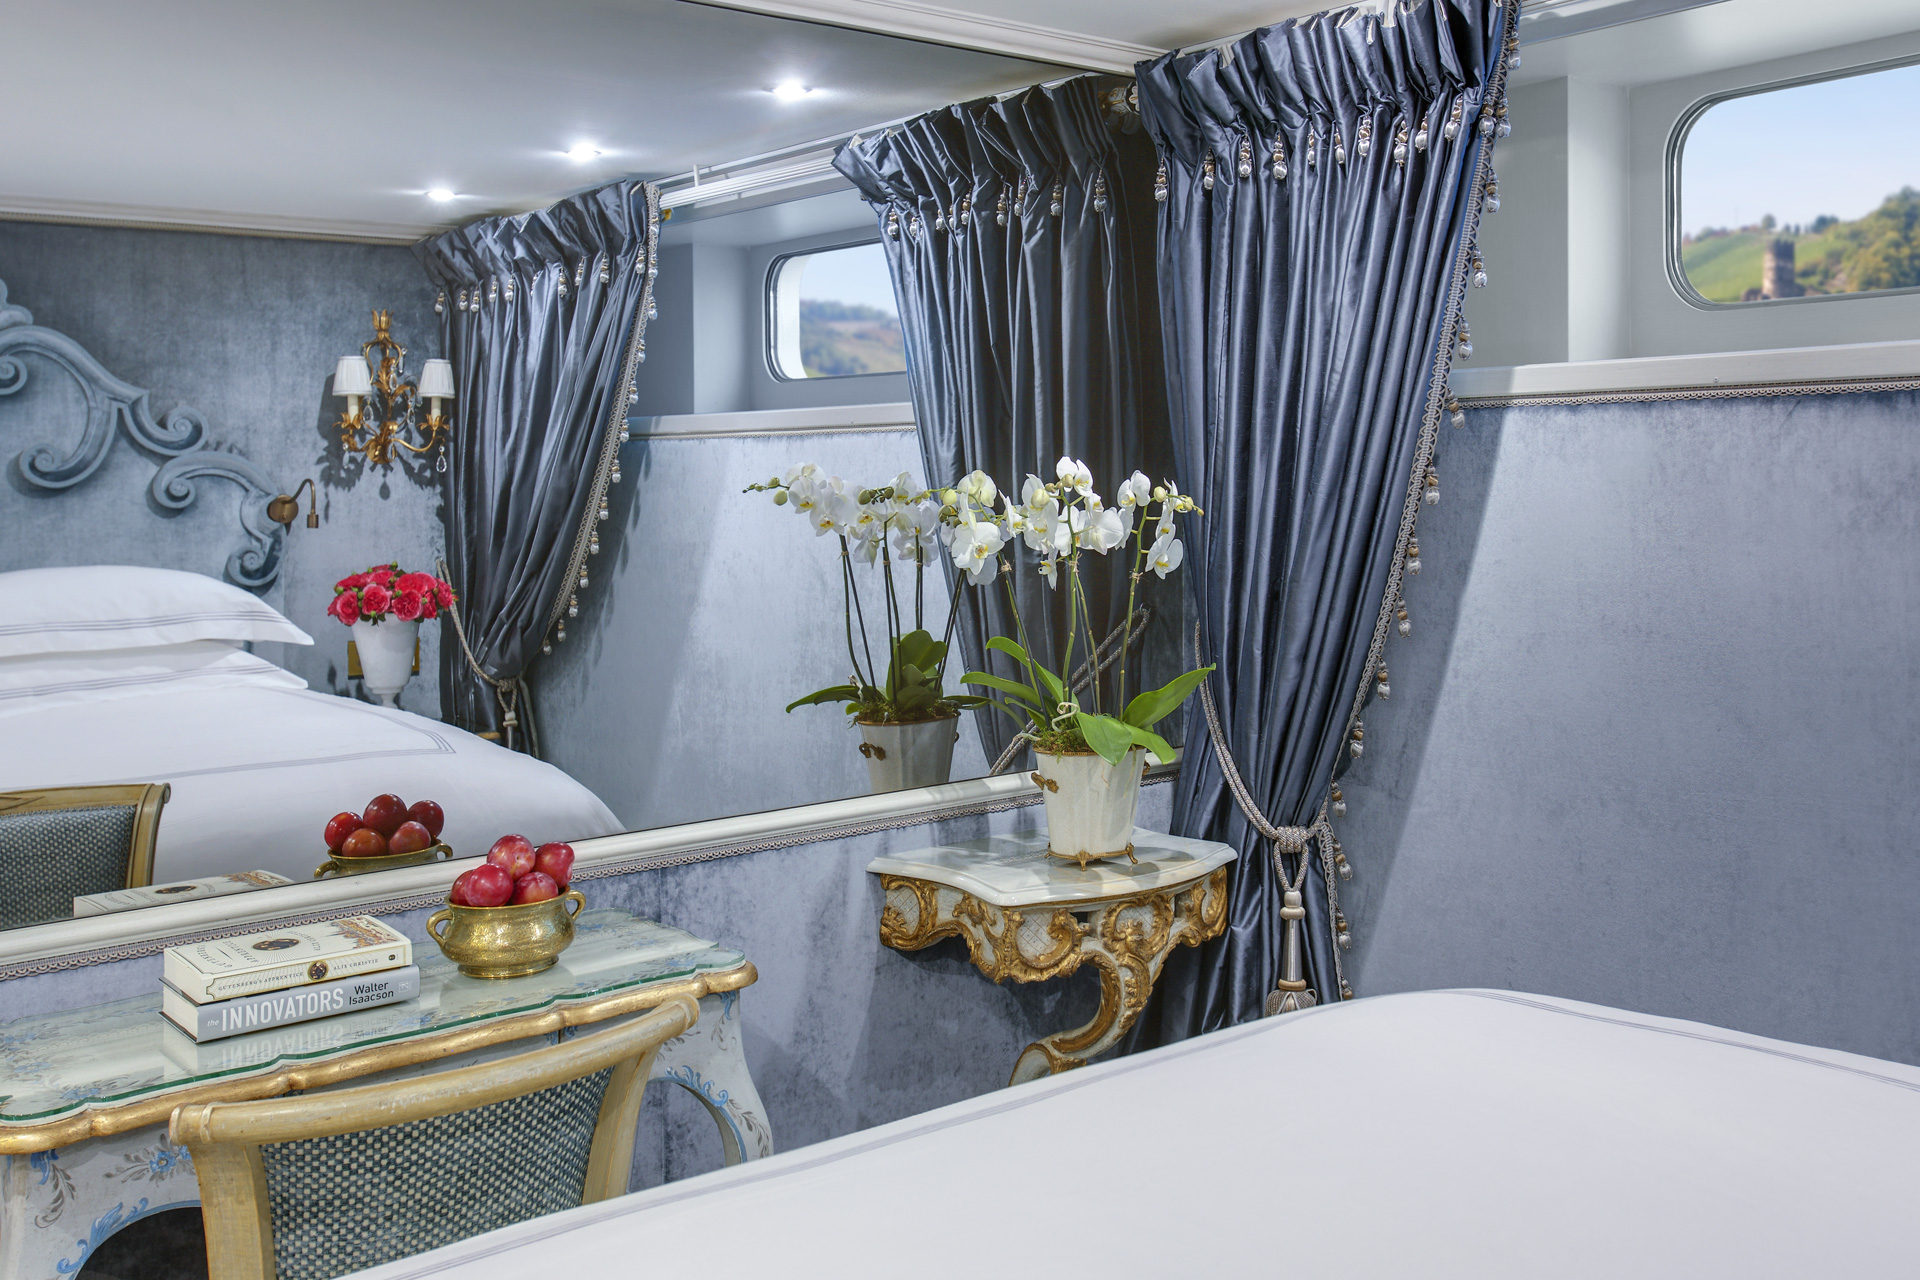 UNIWORLD Boutique River Cruises SS Maria Theresa Accommodation Stateroom Category 4-5 3.jpg